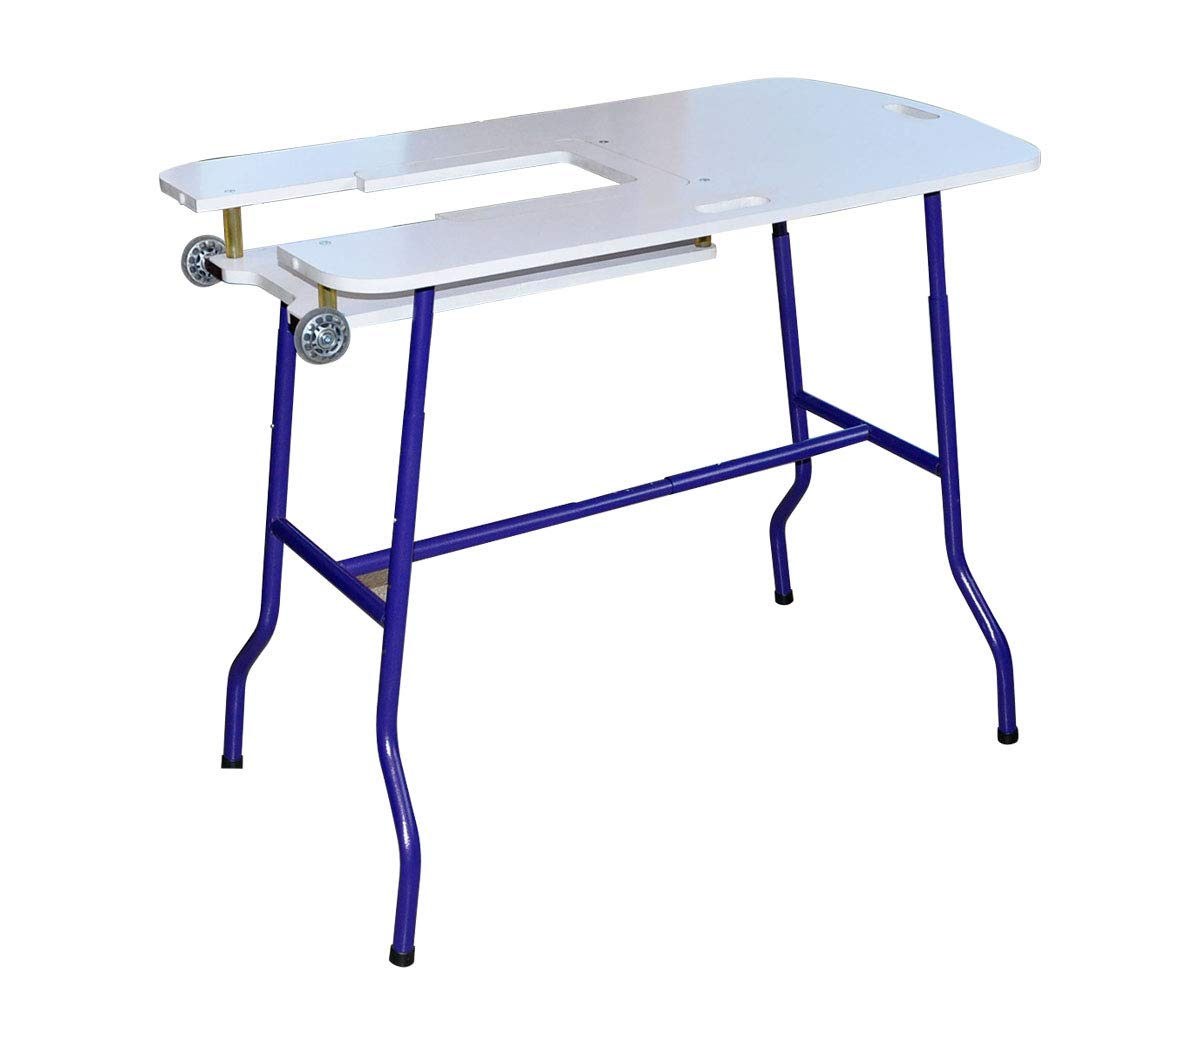 Sullivans Sew Go Adjustable Height Foldable Sewing Table By The